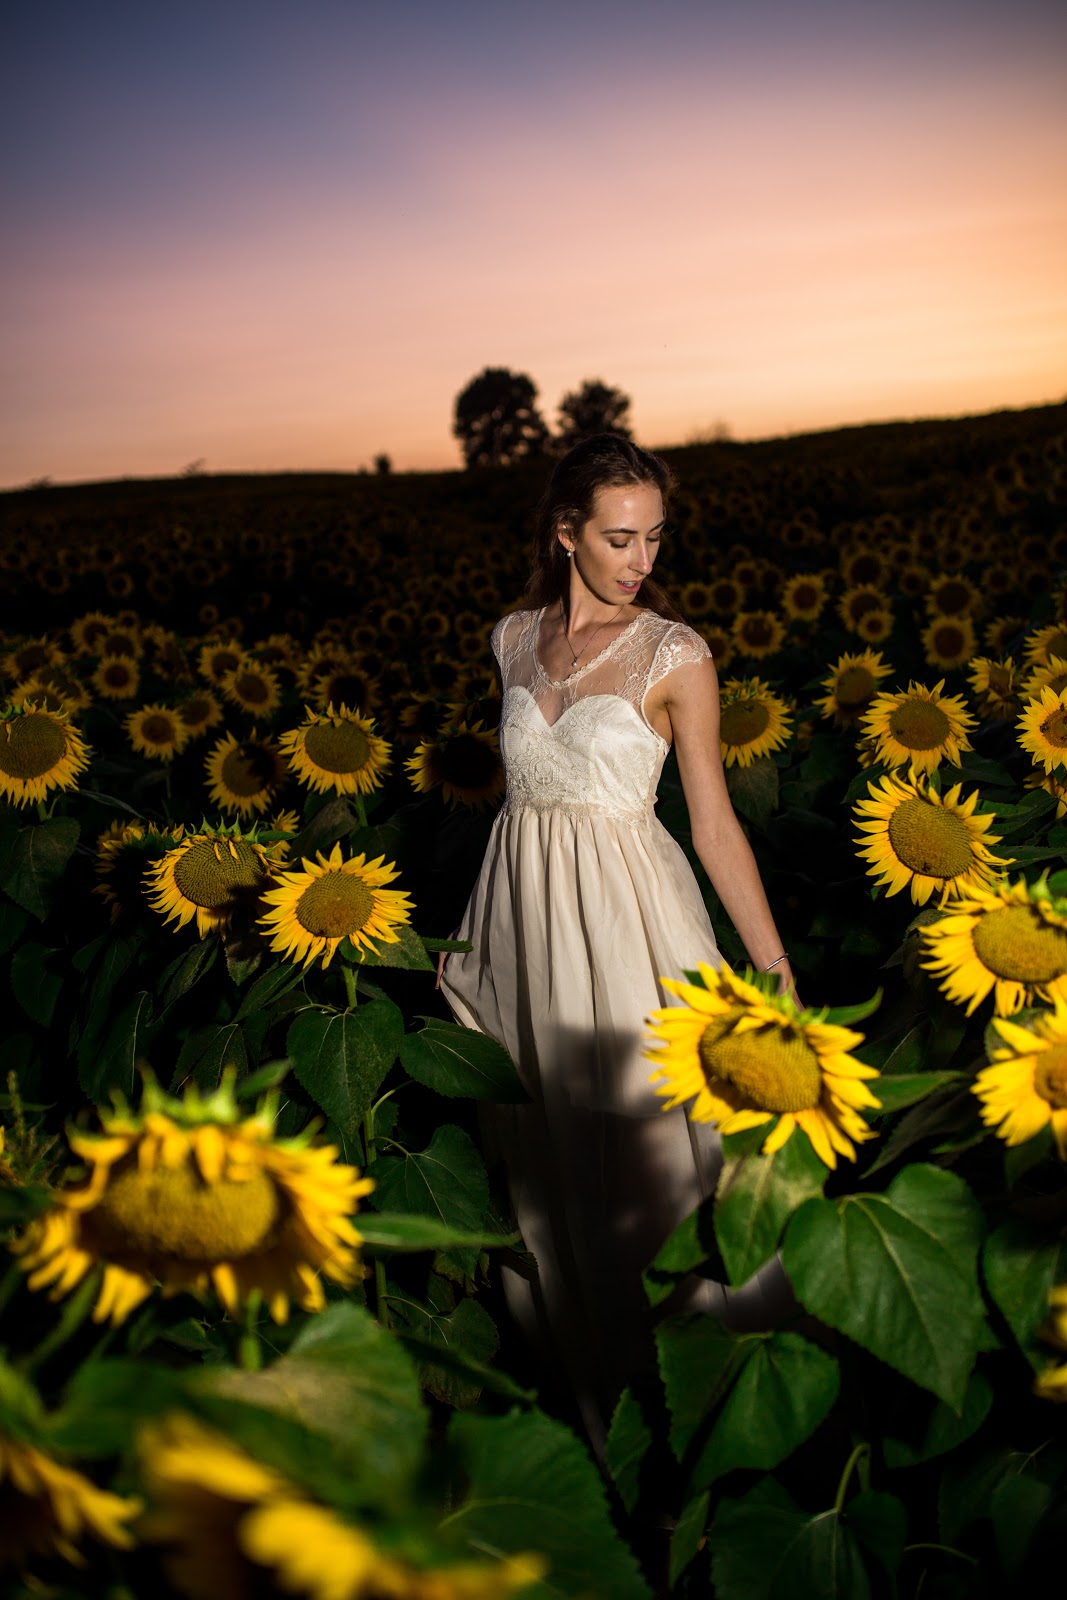 Morgan Pashen | Morgan ma Belle wedding dress in sunflower field